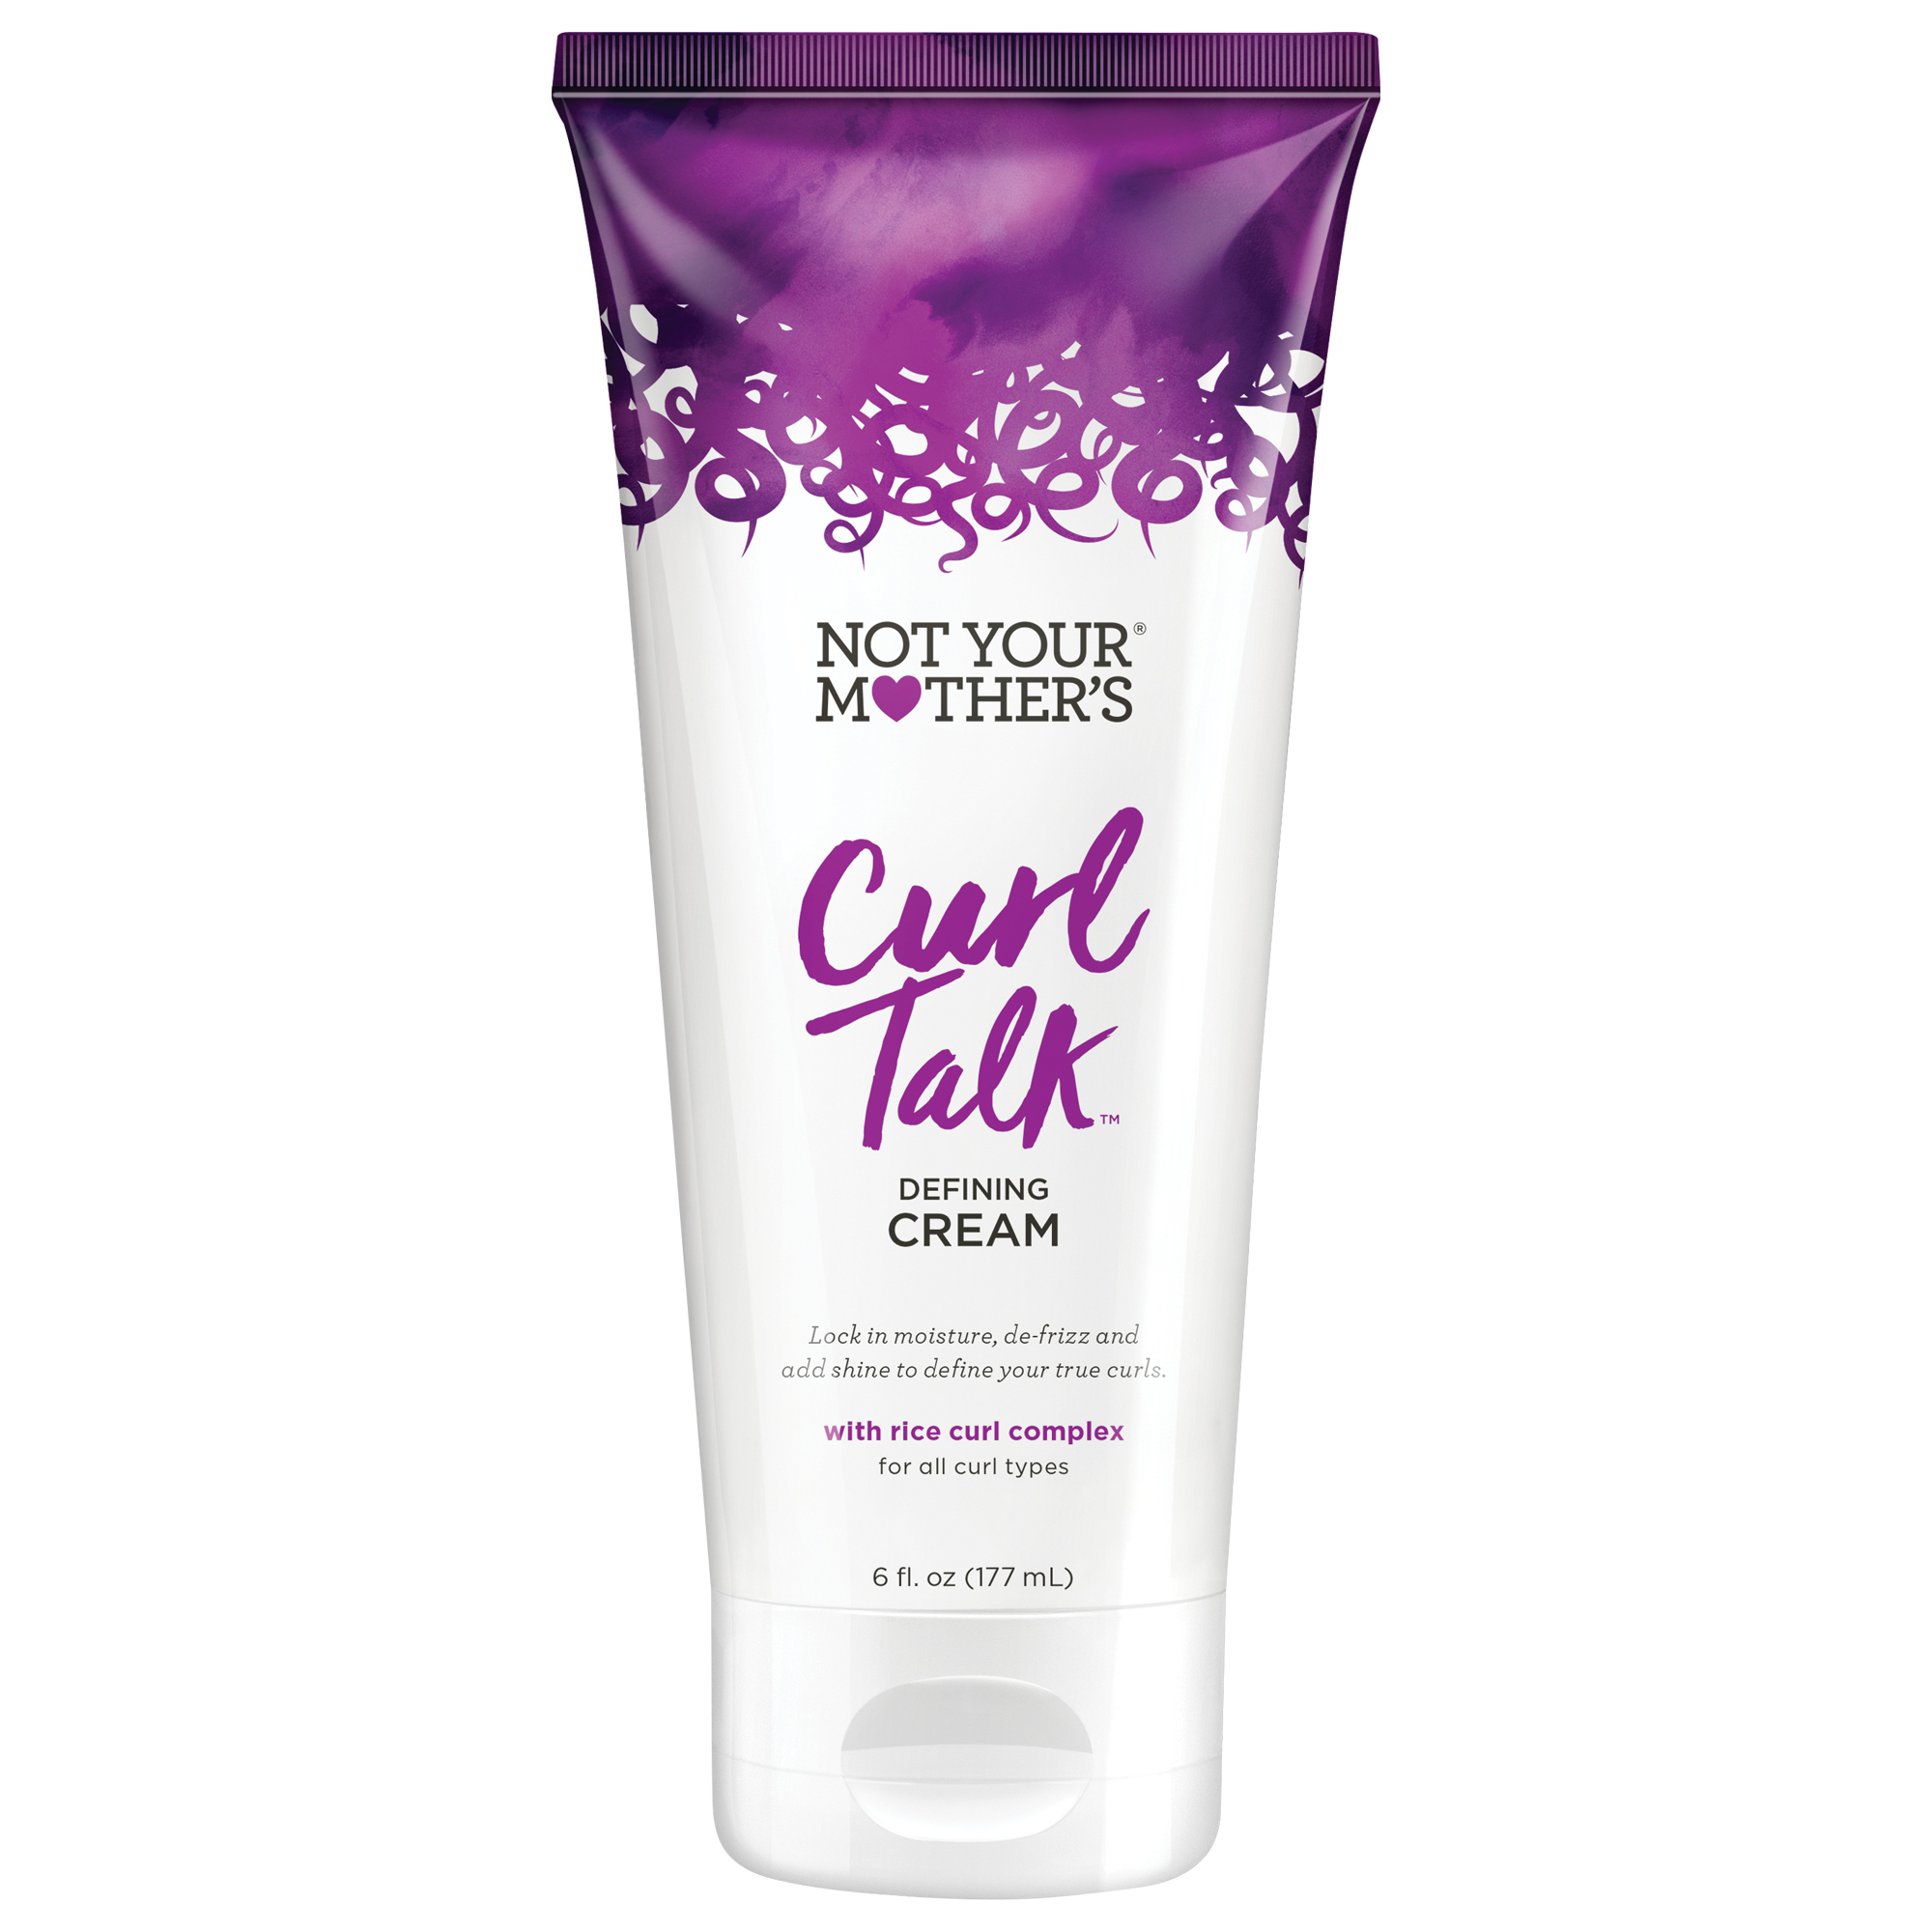 Not Your Mother's Curl Talk Defining Cream